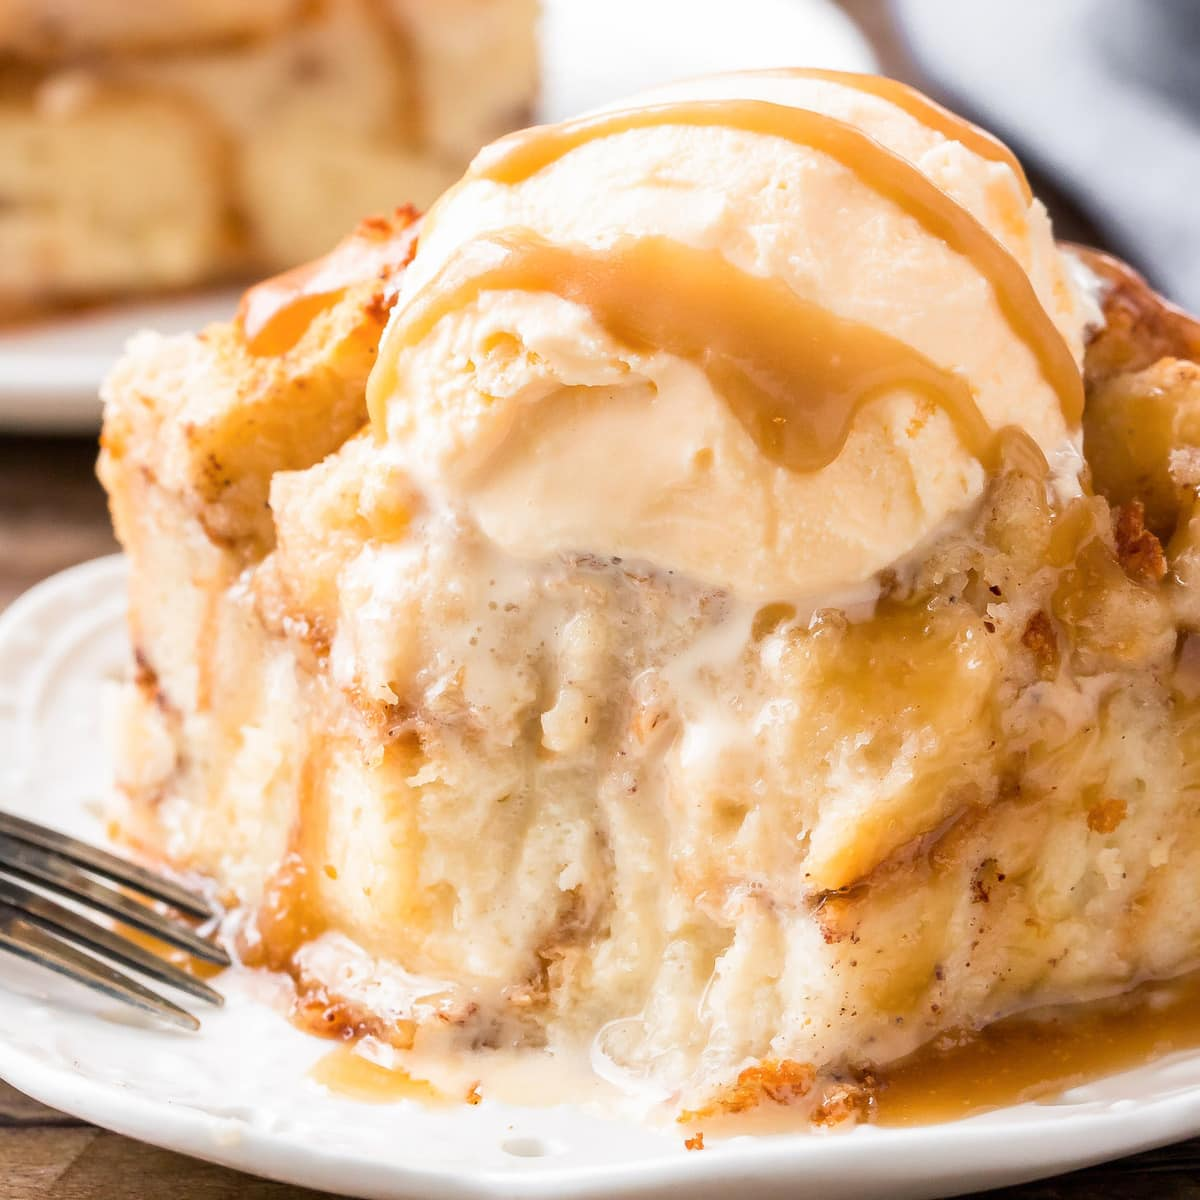 Bread pudding recipe with caramel sauce and ice cream